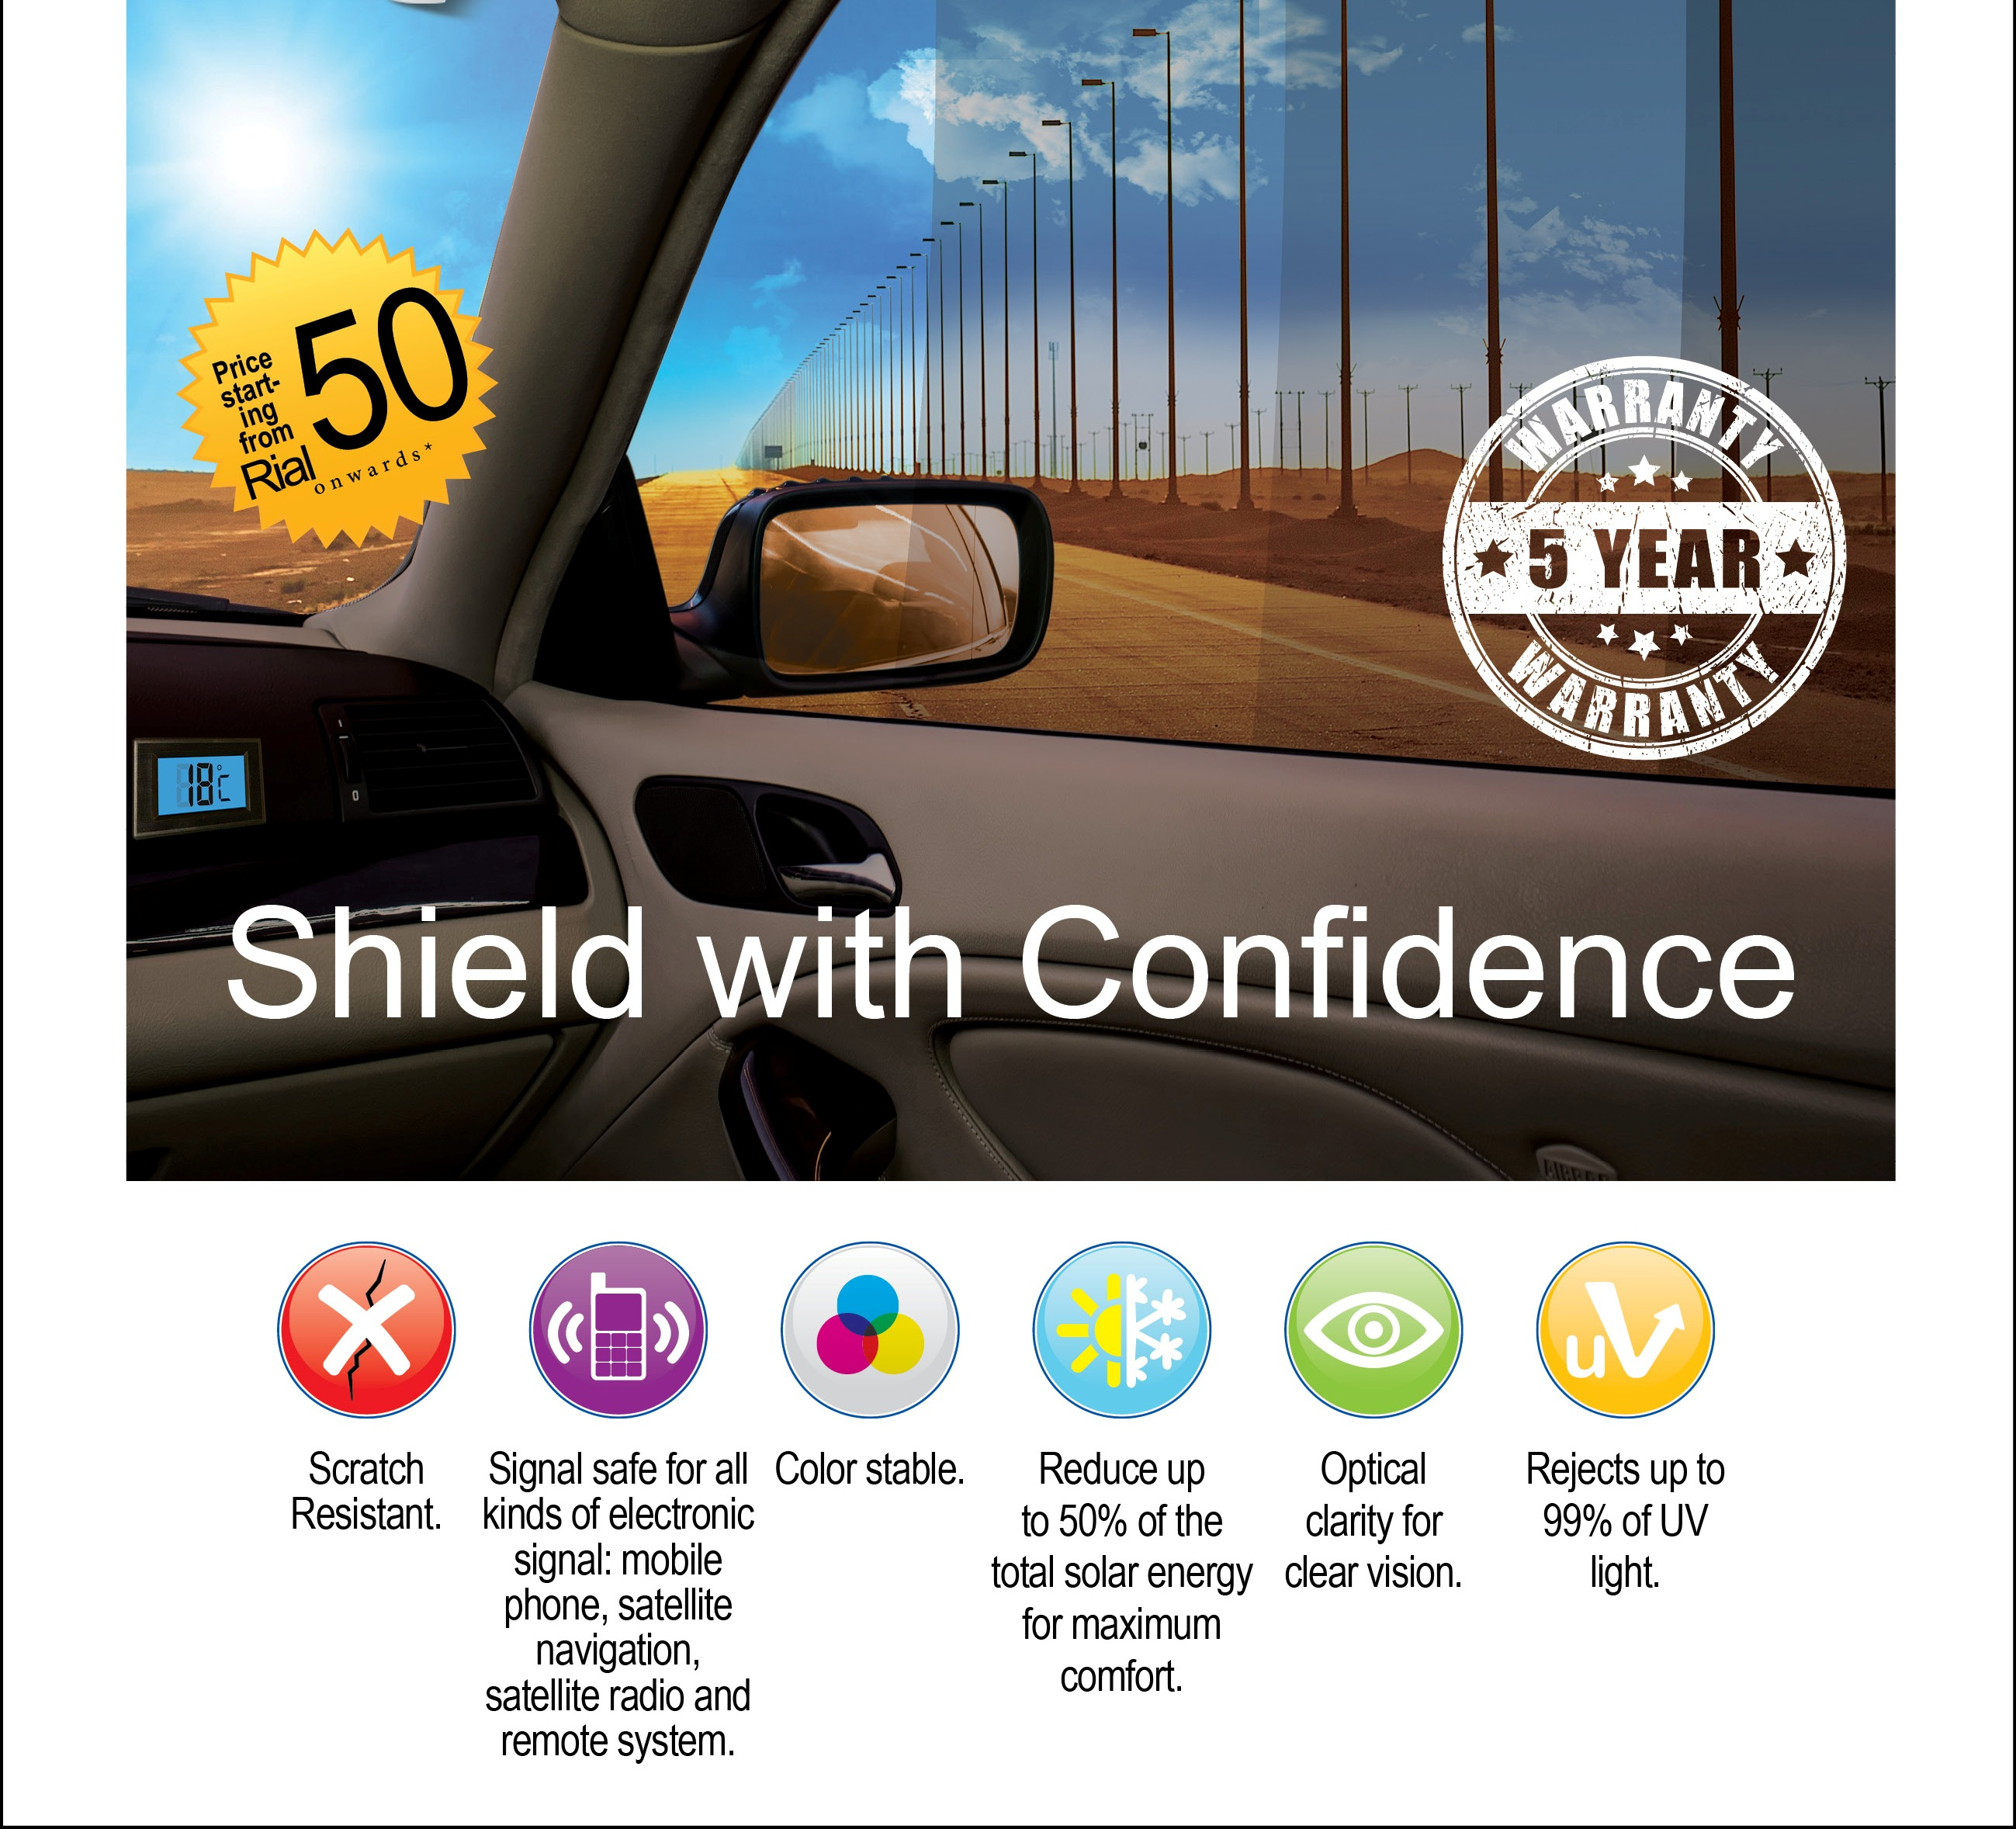 Stay cool with ACDelco Shield